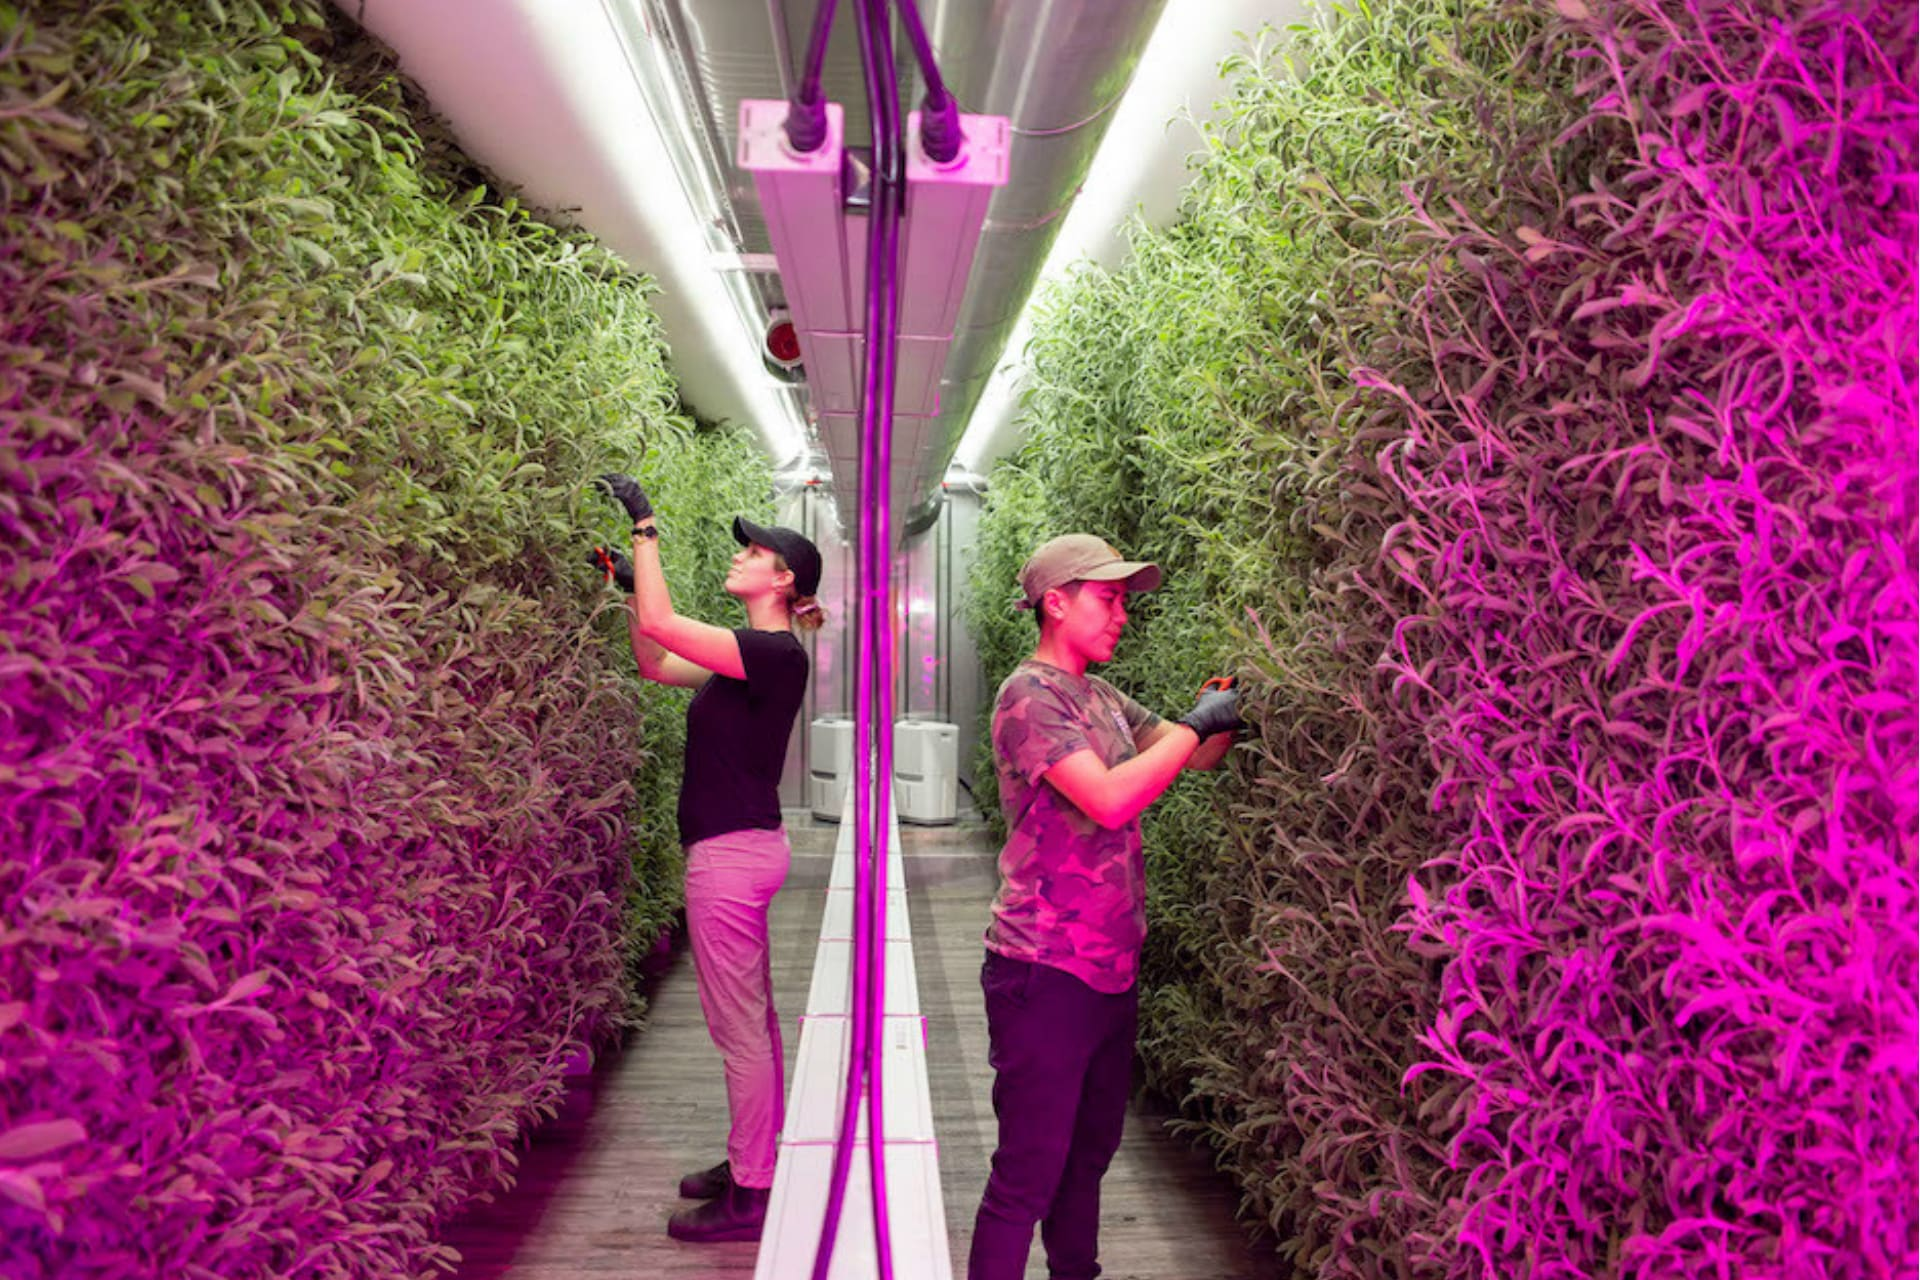 Kimbal Musk S Square Roots Aims To Transform Farming